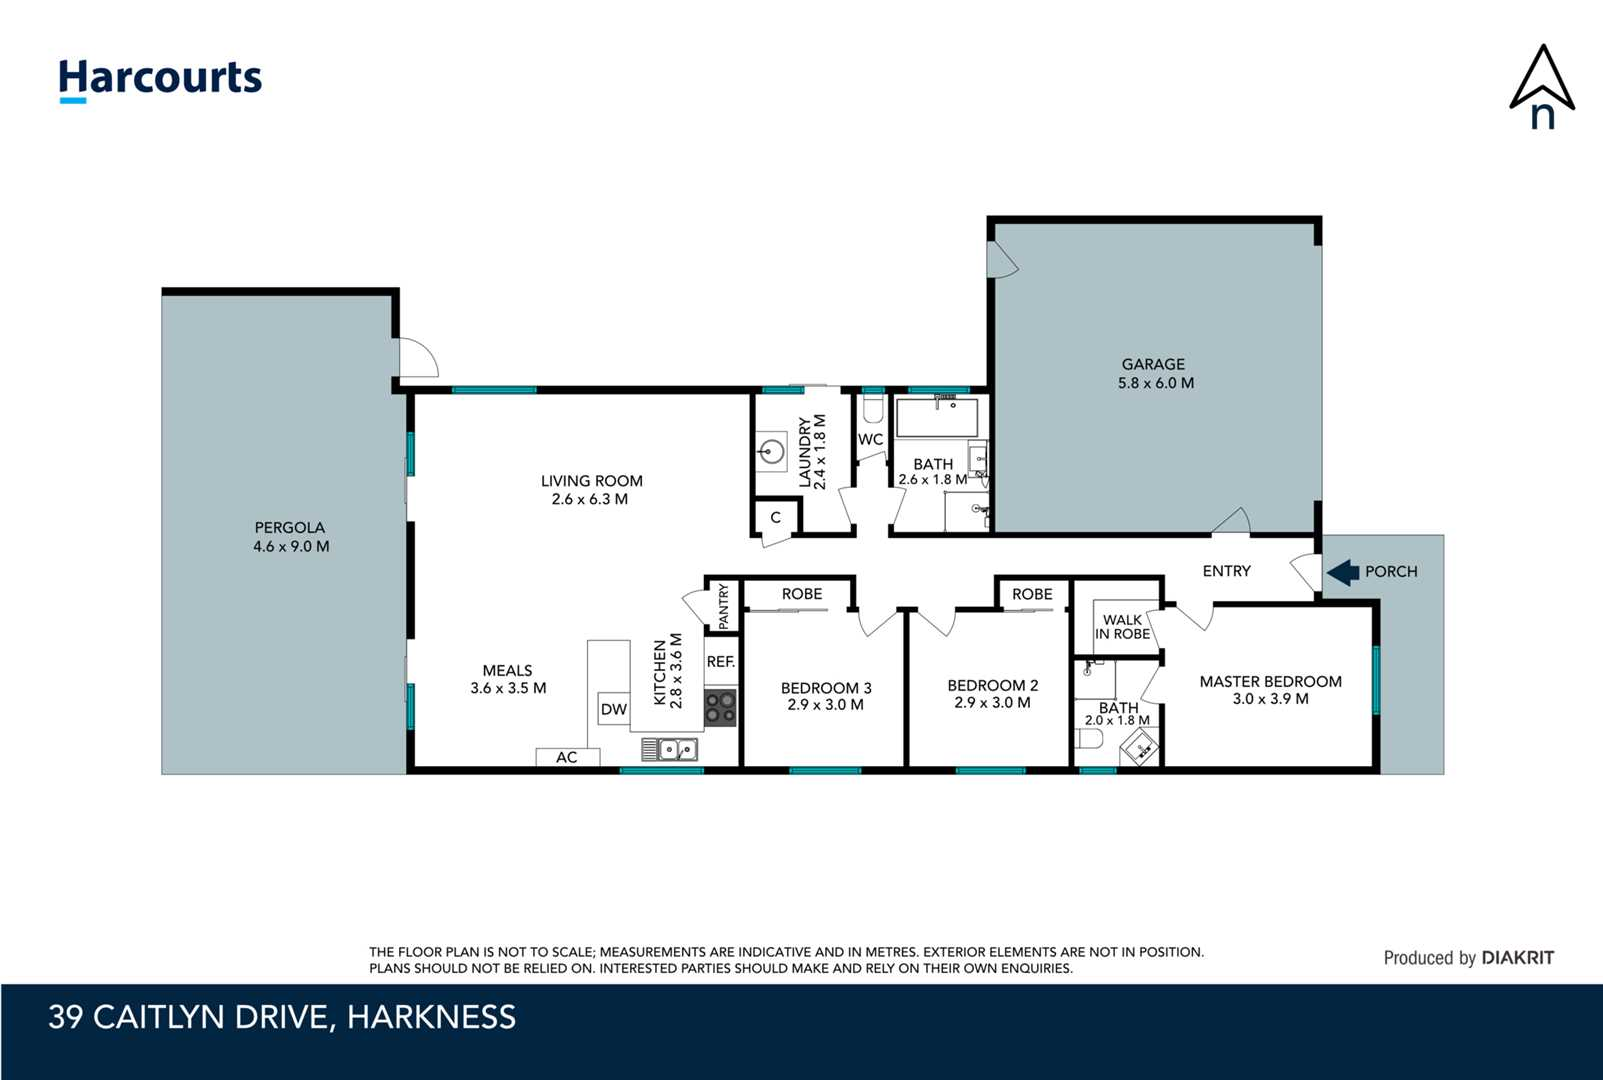 Harkness, 39 Caitlyn Drive | Harcourts Melton | Harcourts